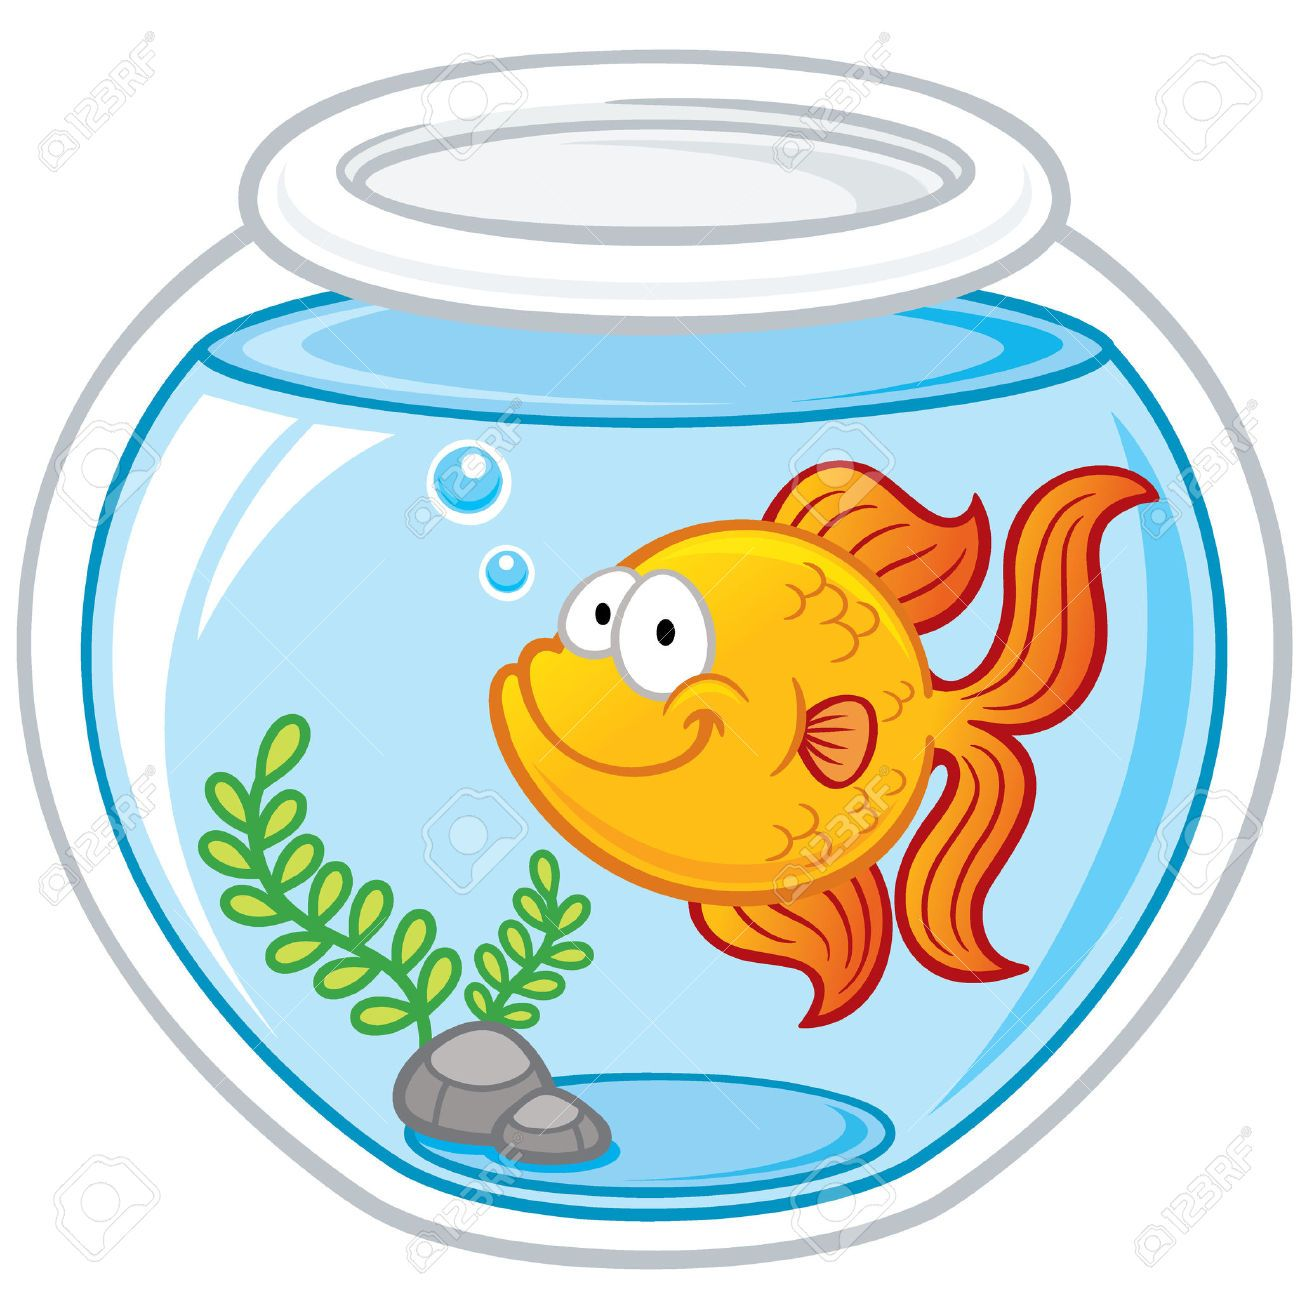 Feeder fish clipart clip freeuse library Aquarium clipart fish feeder - 90 transparent clip arts, images and ... clip freeuse library